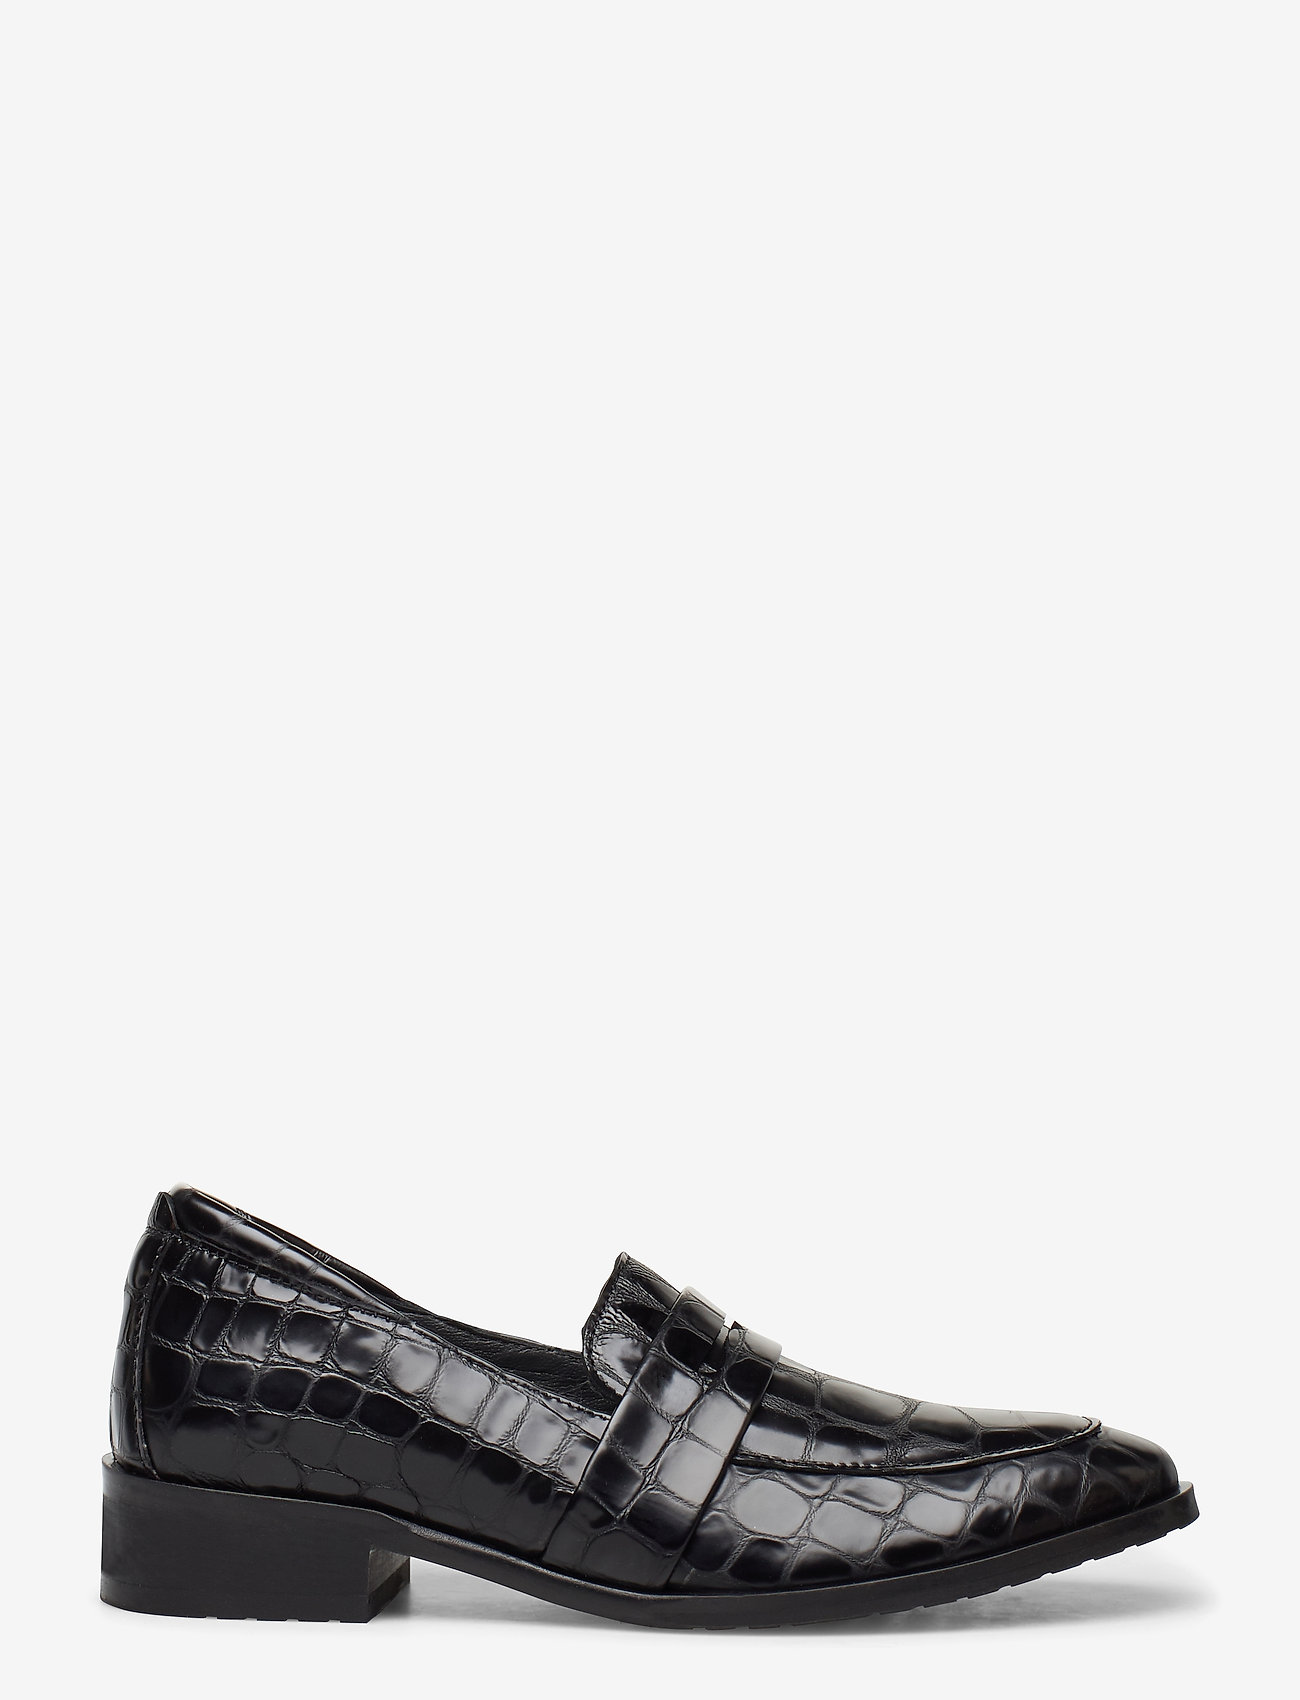 ANGULUS - Loafer - flat - loafers - 1674 black croco - 1